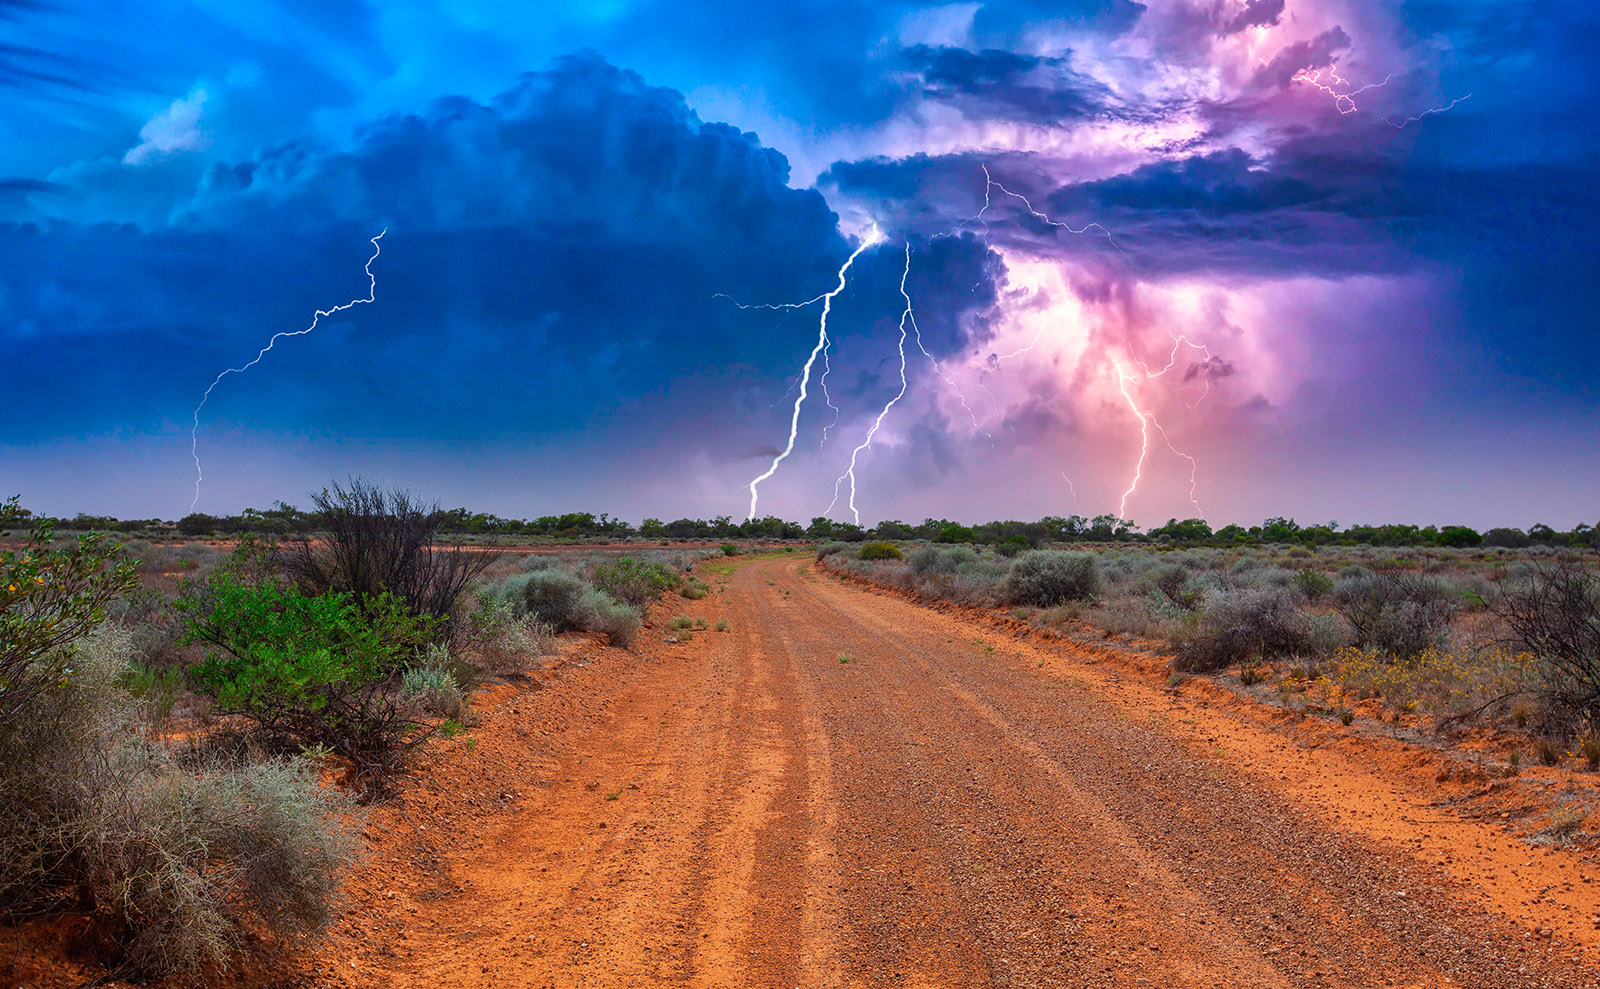 red sand of australian outback with lightning in the sky